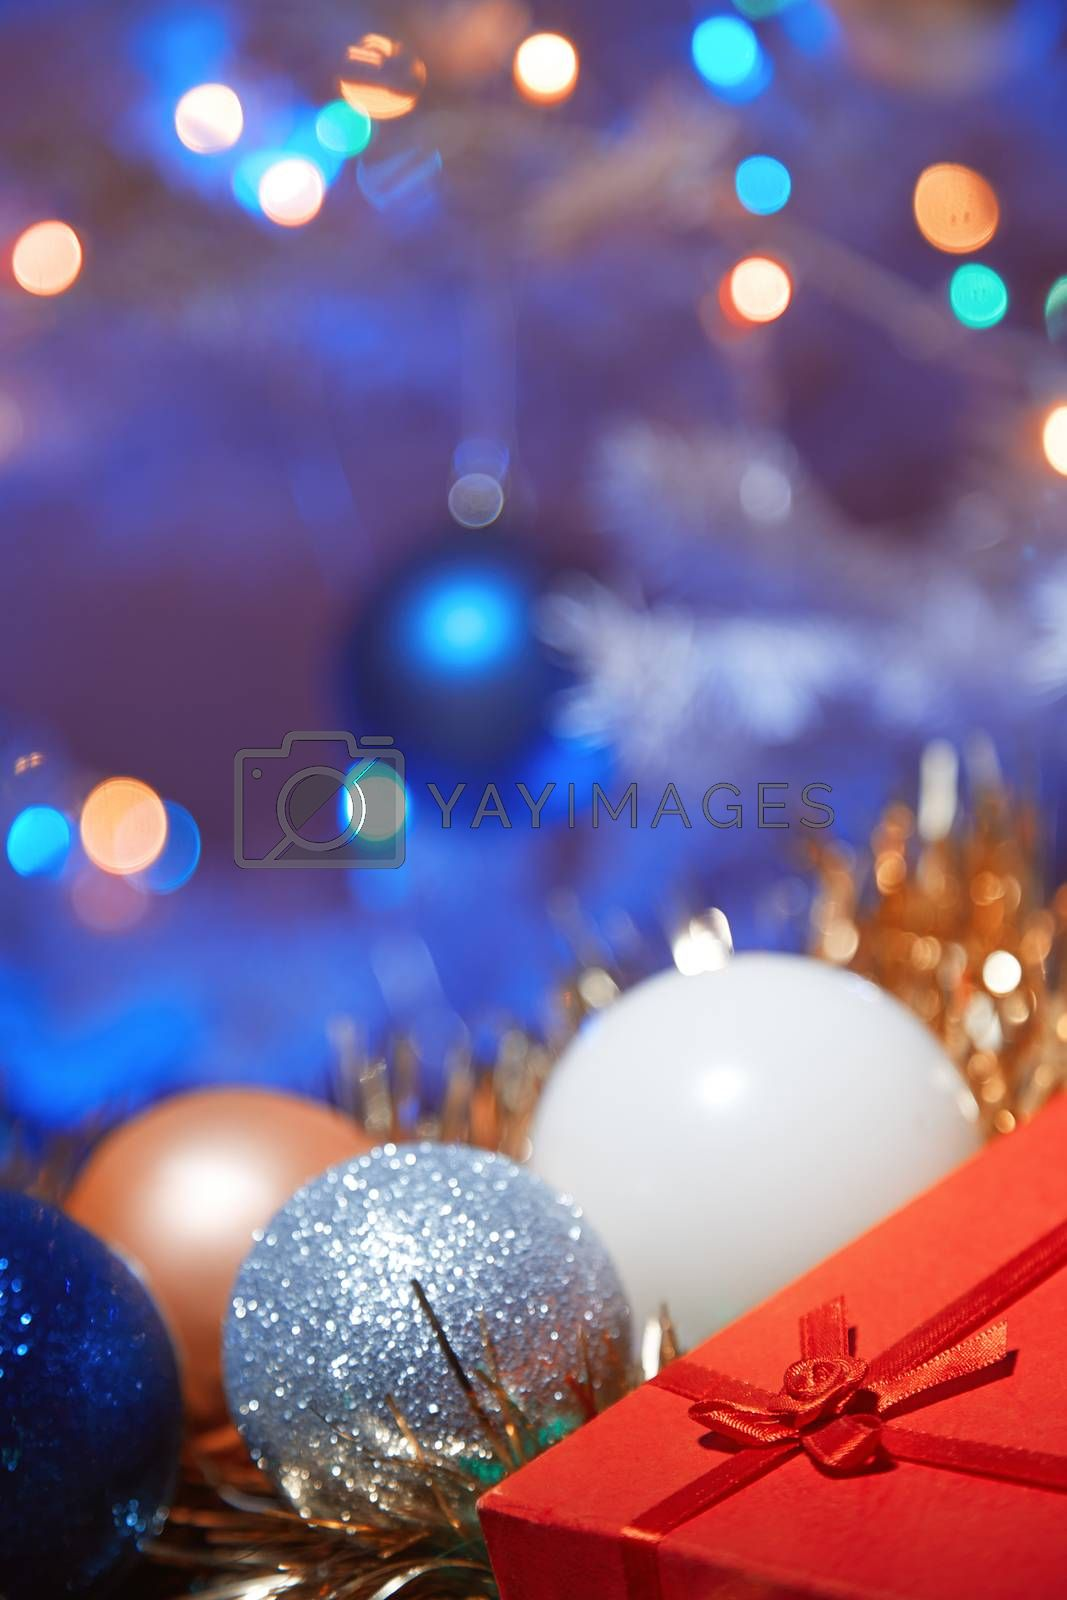 Close-up view on the Christmas decoration and gift box. Vertical photo